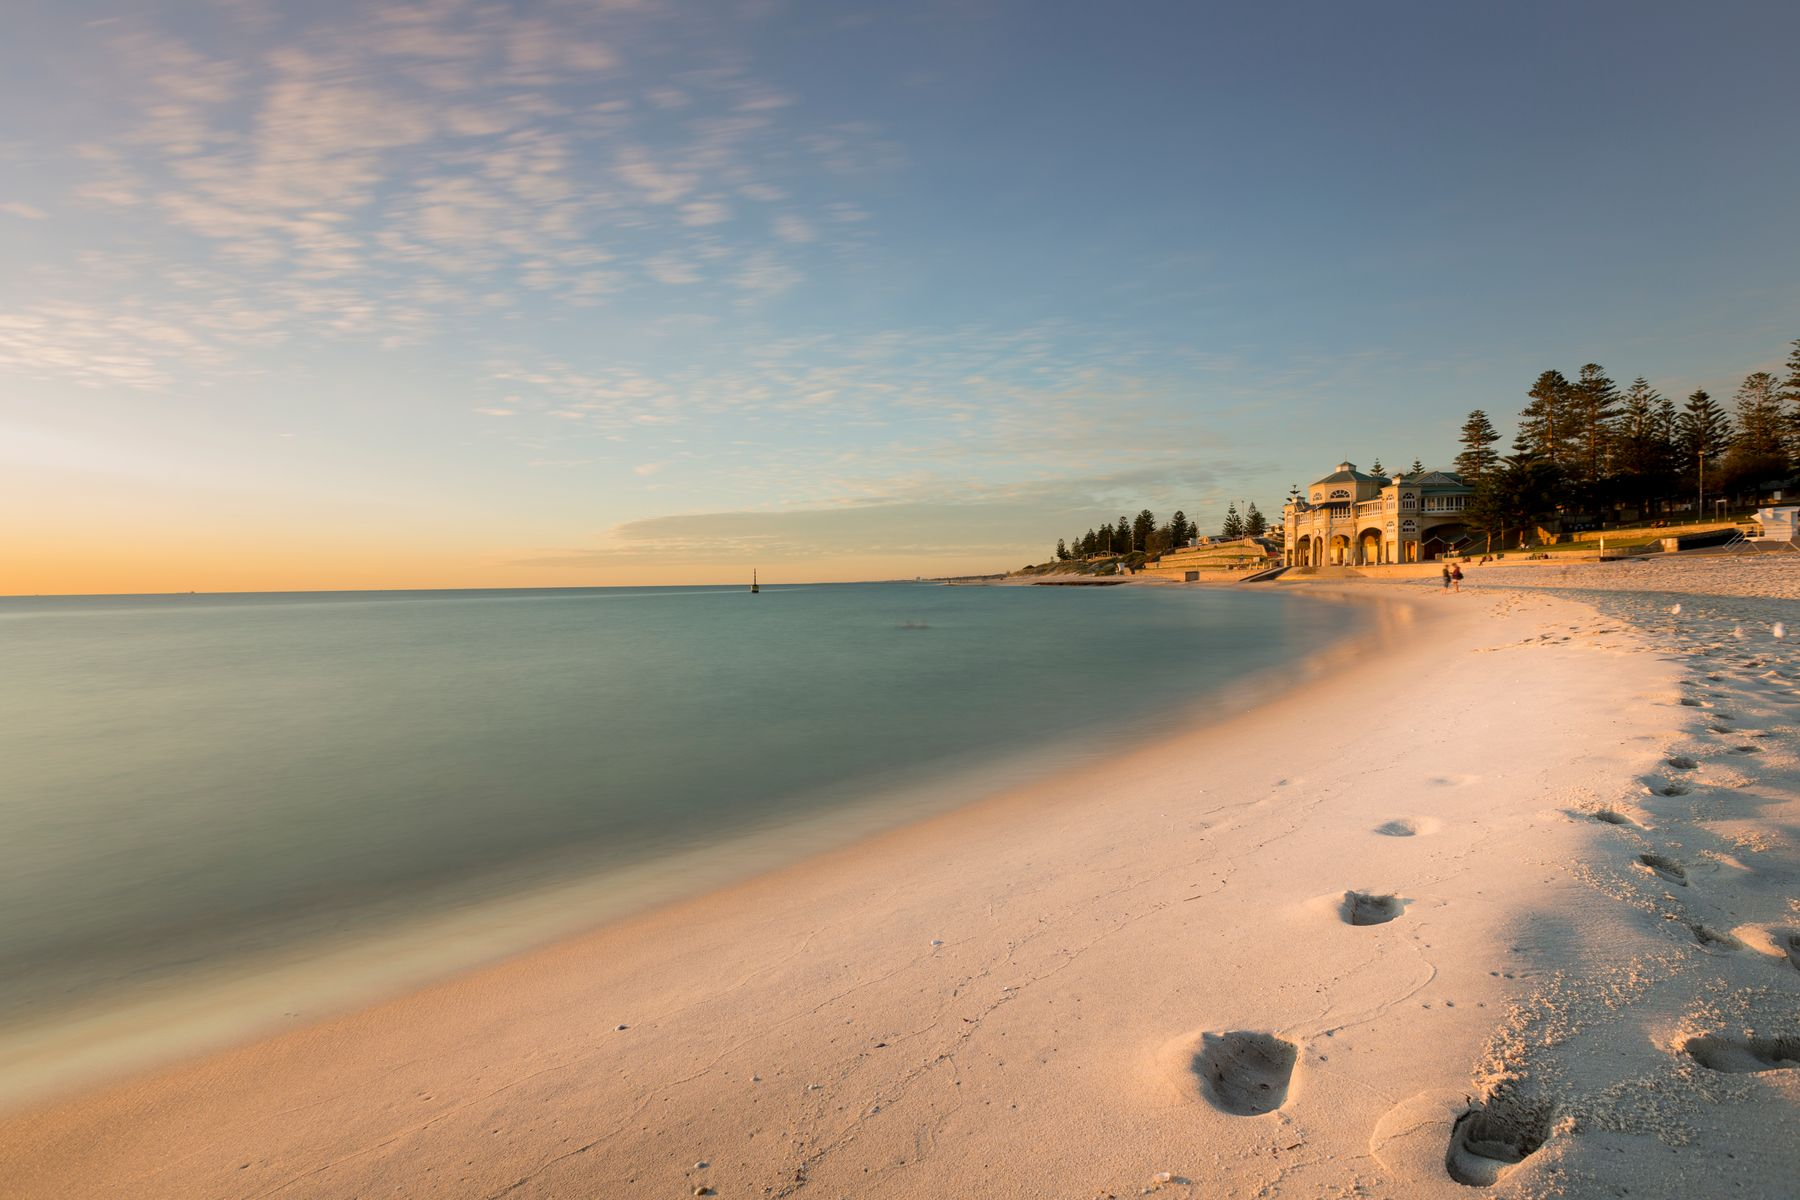 Footprints along the white sand near the water on Cottesloe Beach, Australia